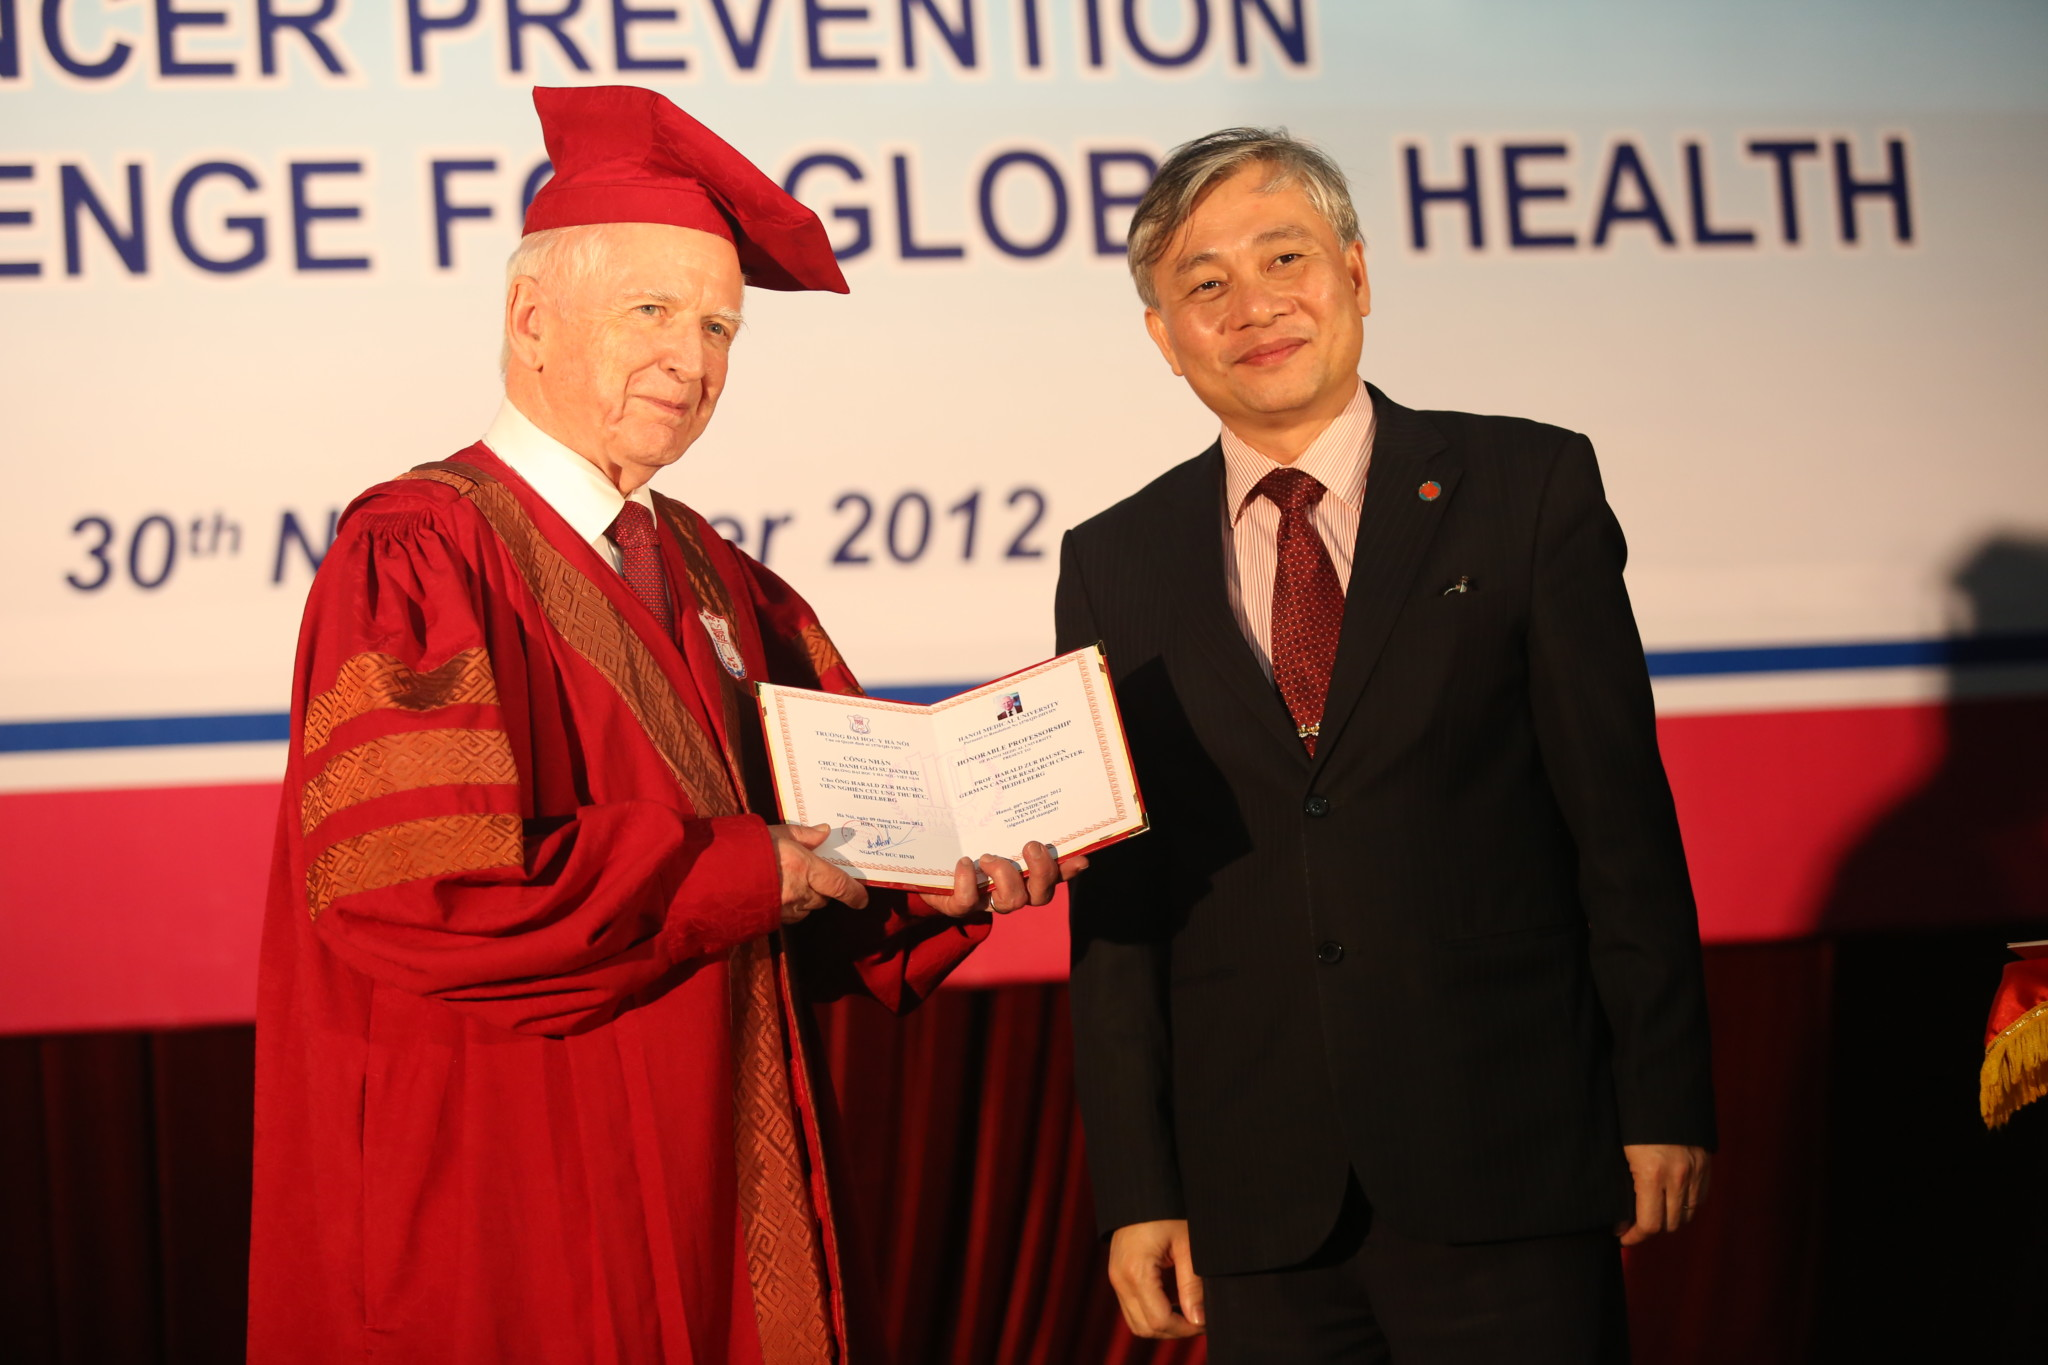 Medicine Nobel Laureate Prof. Harald zur Hausen receiving an honorary doctorate degree in Hanoi